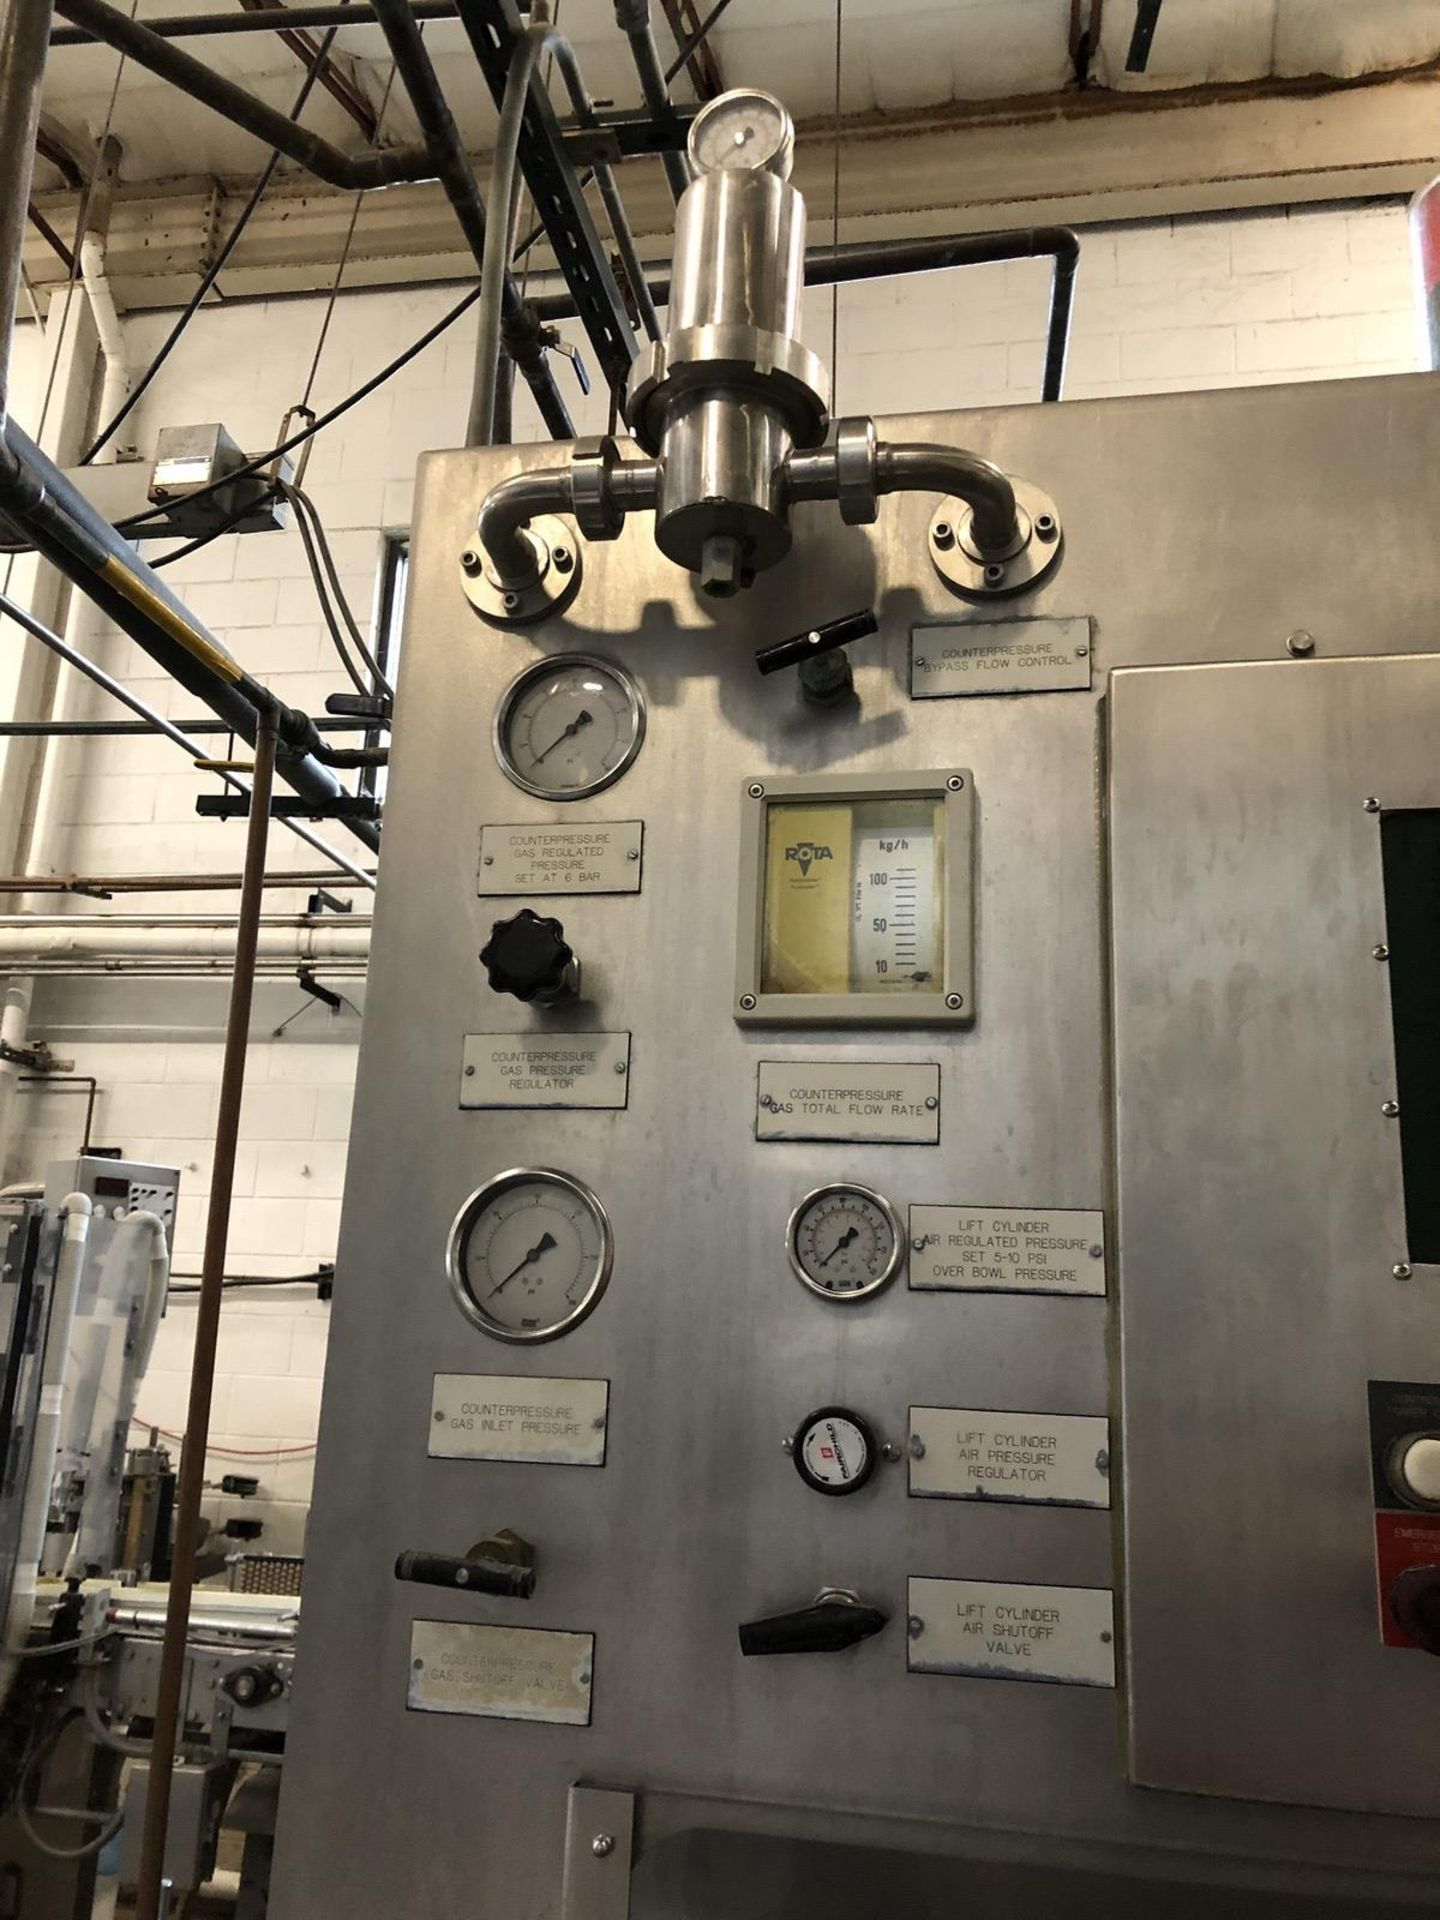 Lot 52 - Krones Model 20/5 Bottle Filler and Crowner, 130 Bottles per Minute, | Sub to Bulk | Rig Fee: $1750